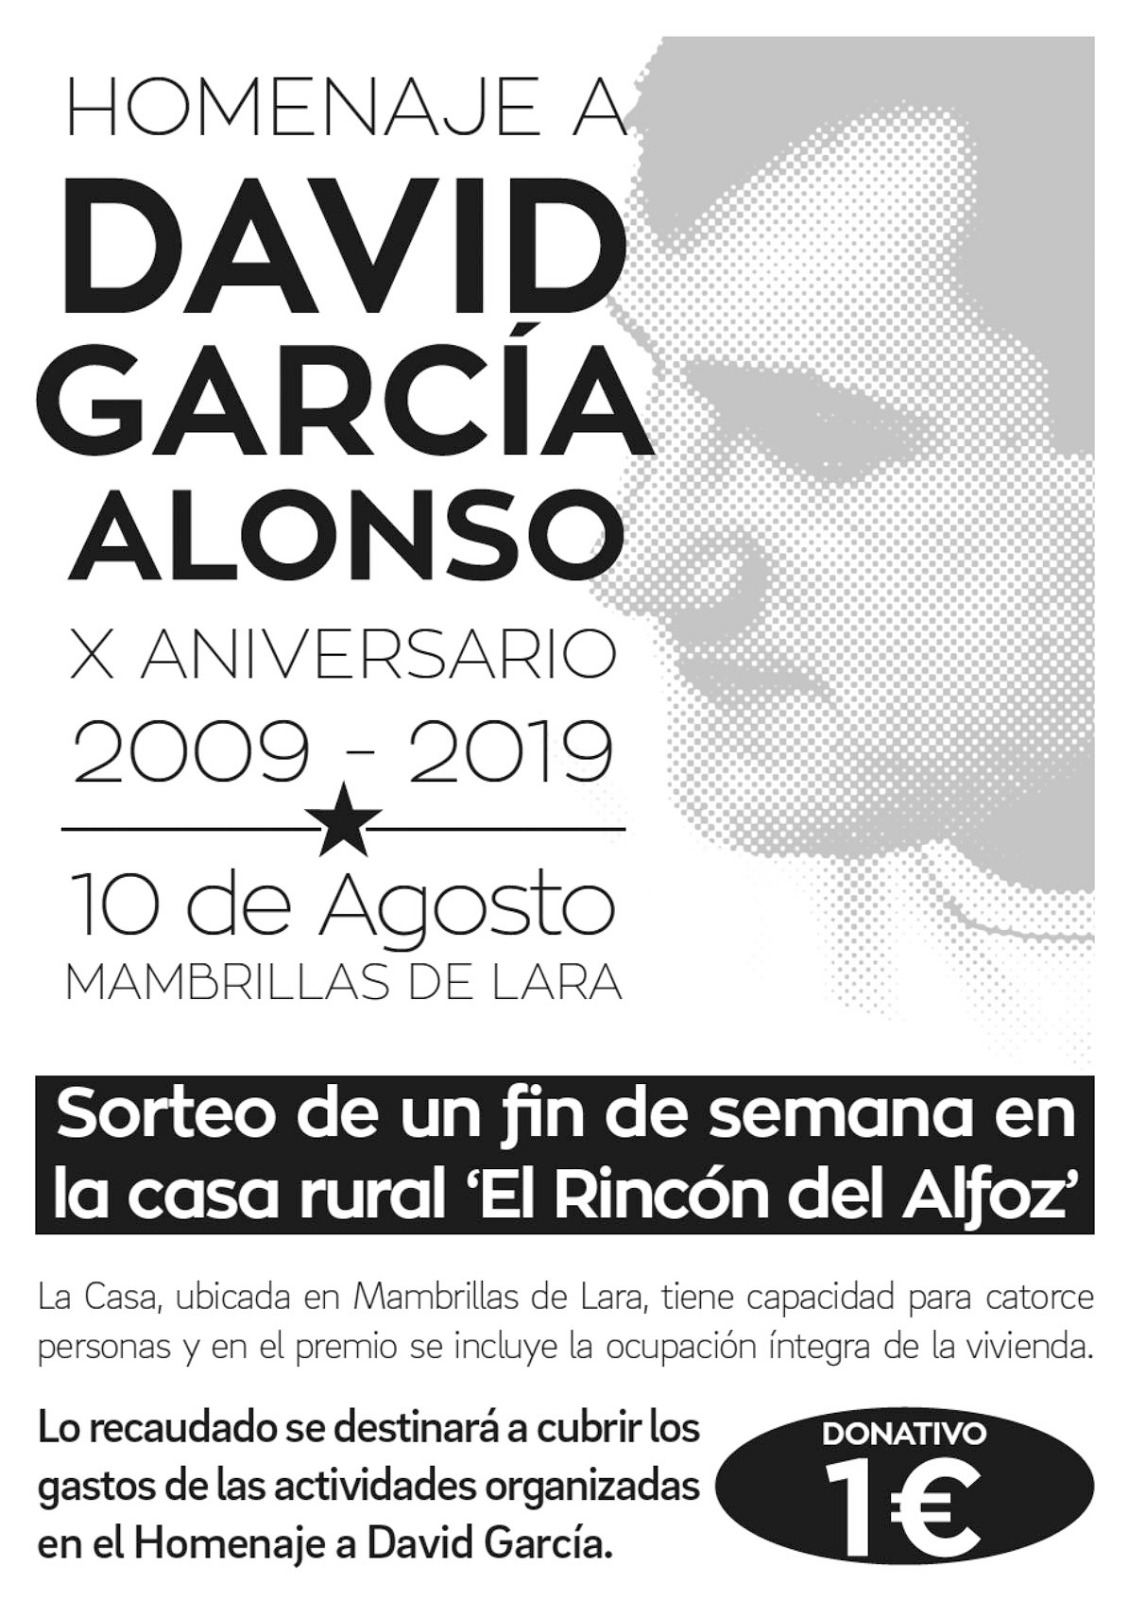 Photo of HOMENAJE DAVID GARCÍA ALONSO X ANIVERSARIO